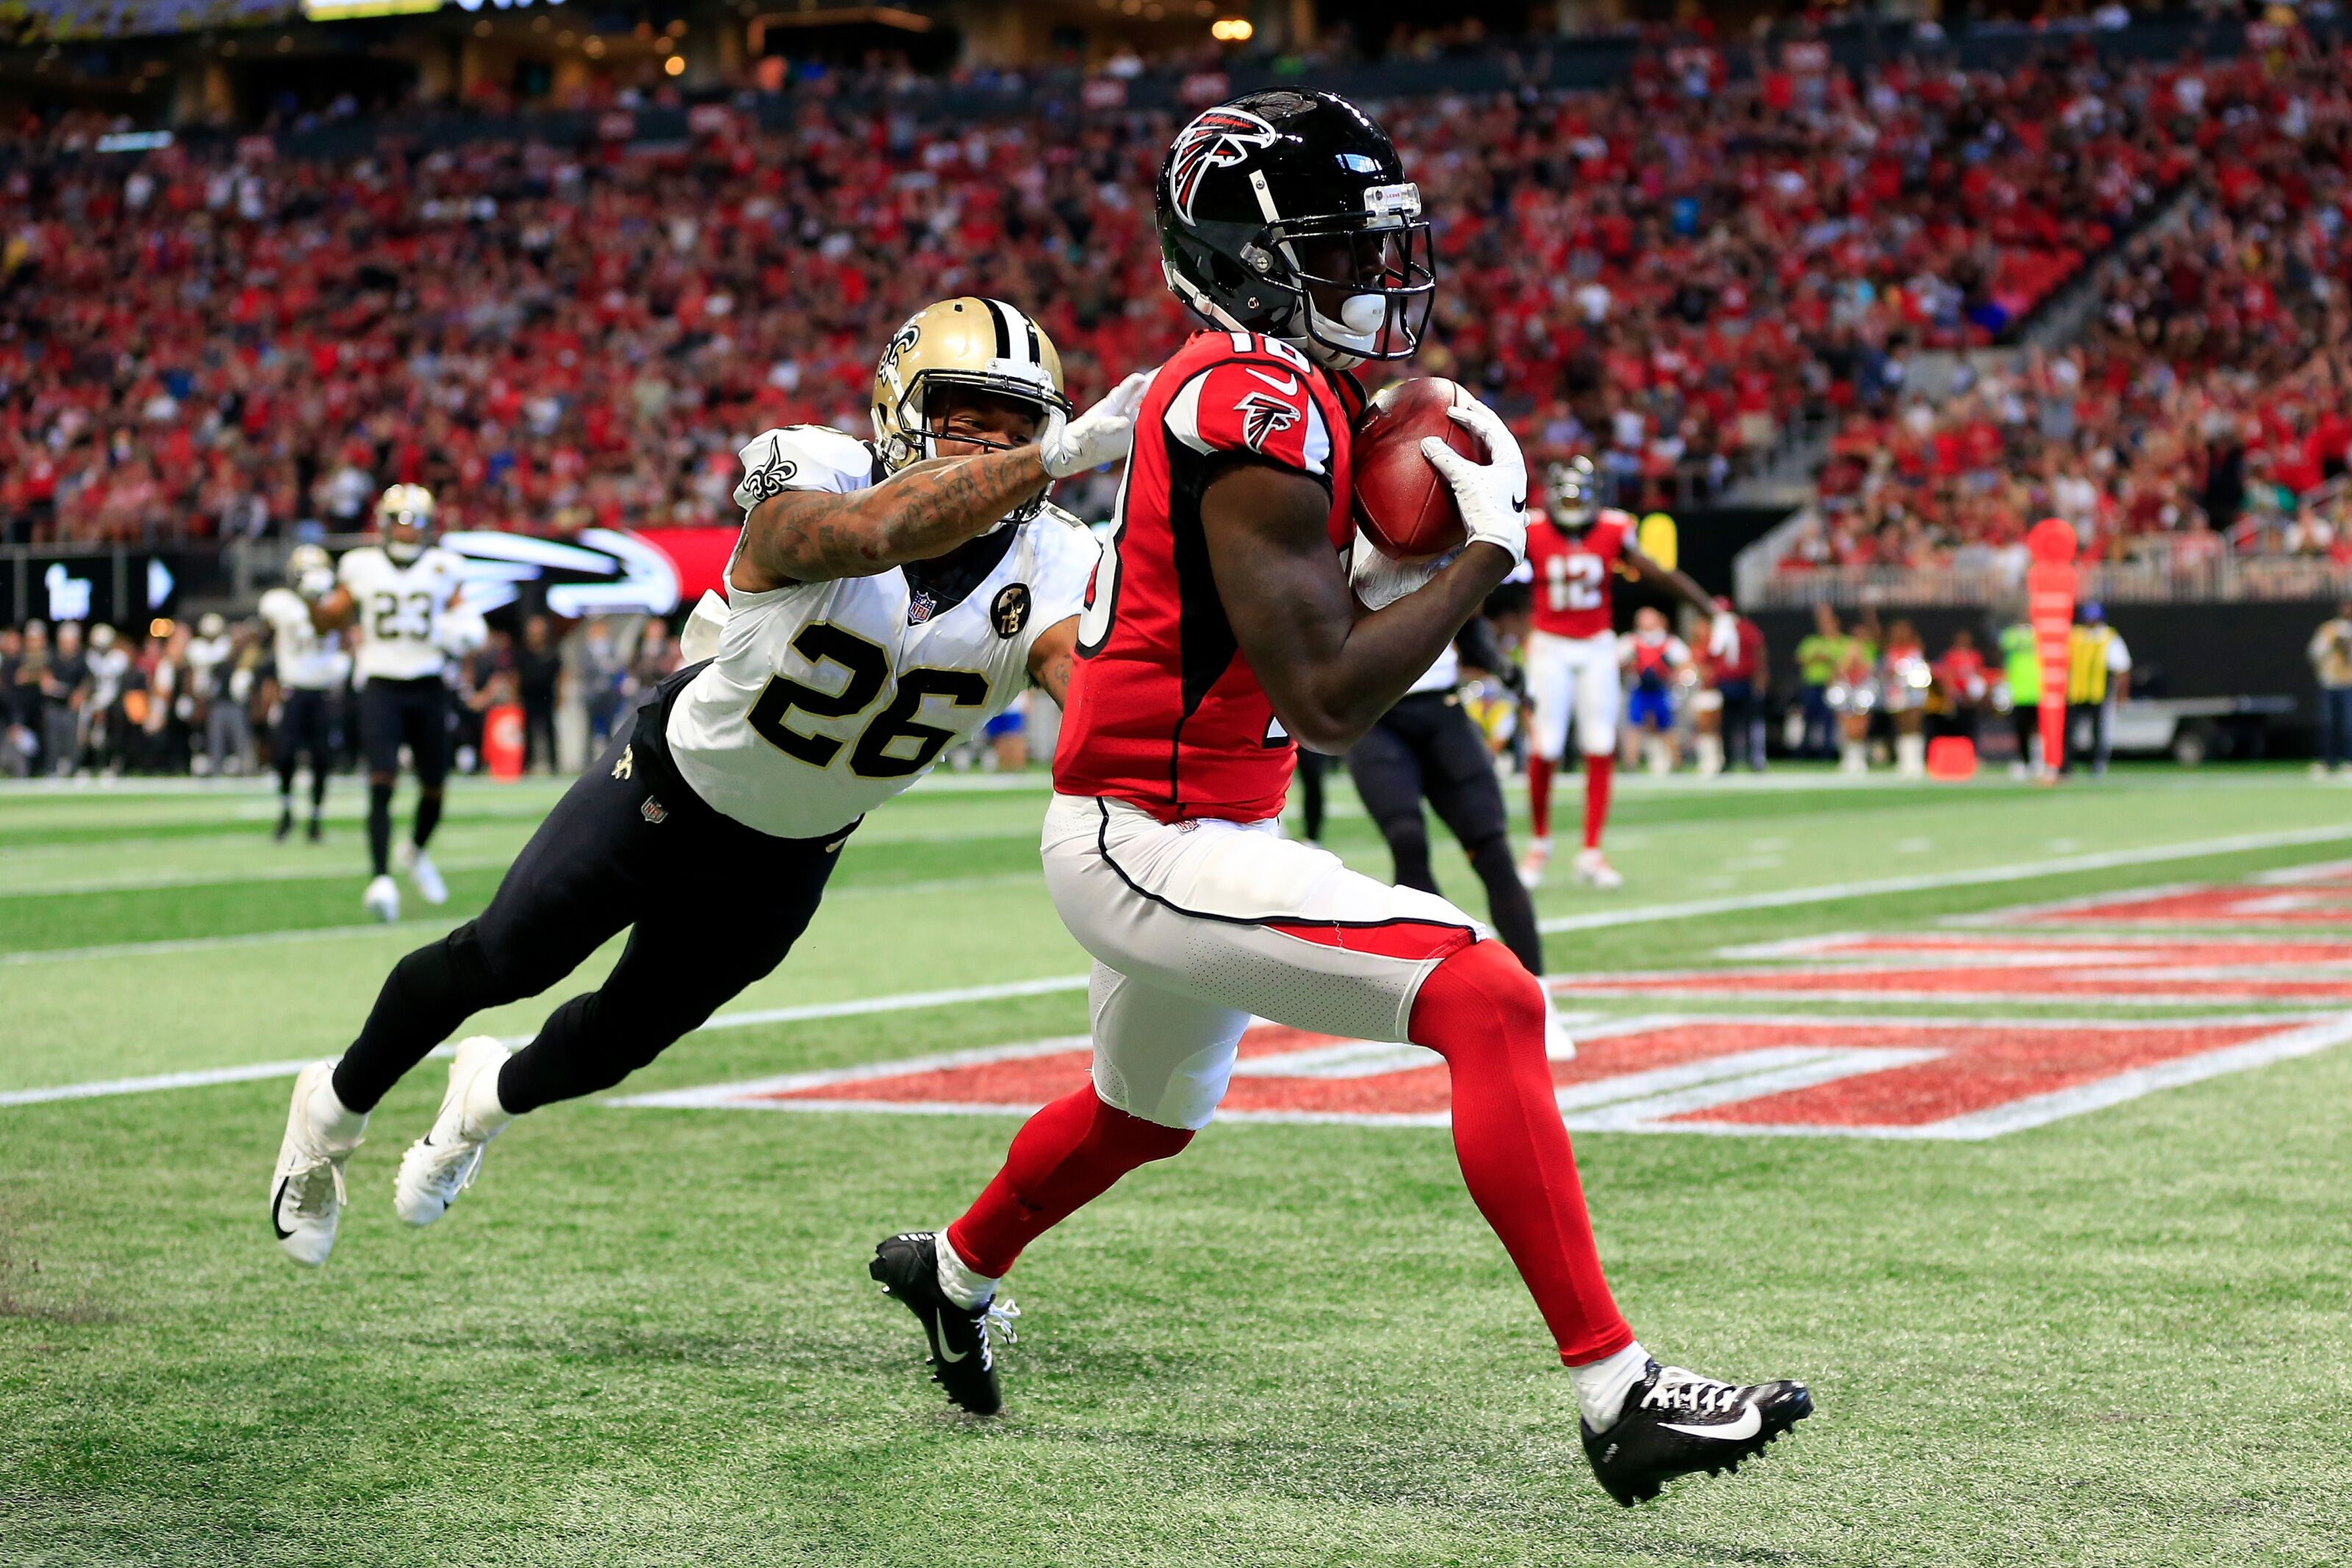 ATLANTA, GA - SEPTEMBER 23: Calvin Ridley #18 of the Atlanta Falcons catches a touchdown pass over P.J. Williams #26 of the New Orleans Saints during the first half at Mercedes-Benz Stadium on September 23, 2018 in Atlanta, Georgia. (Photo by Daniel Shirey/Getty Images)